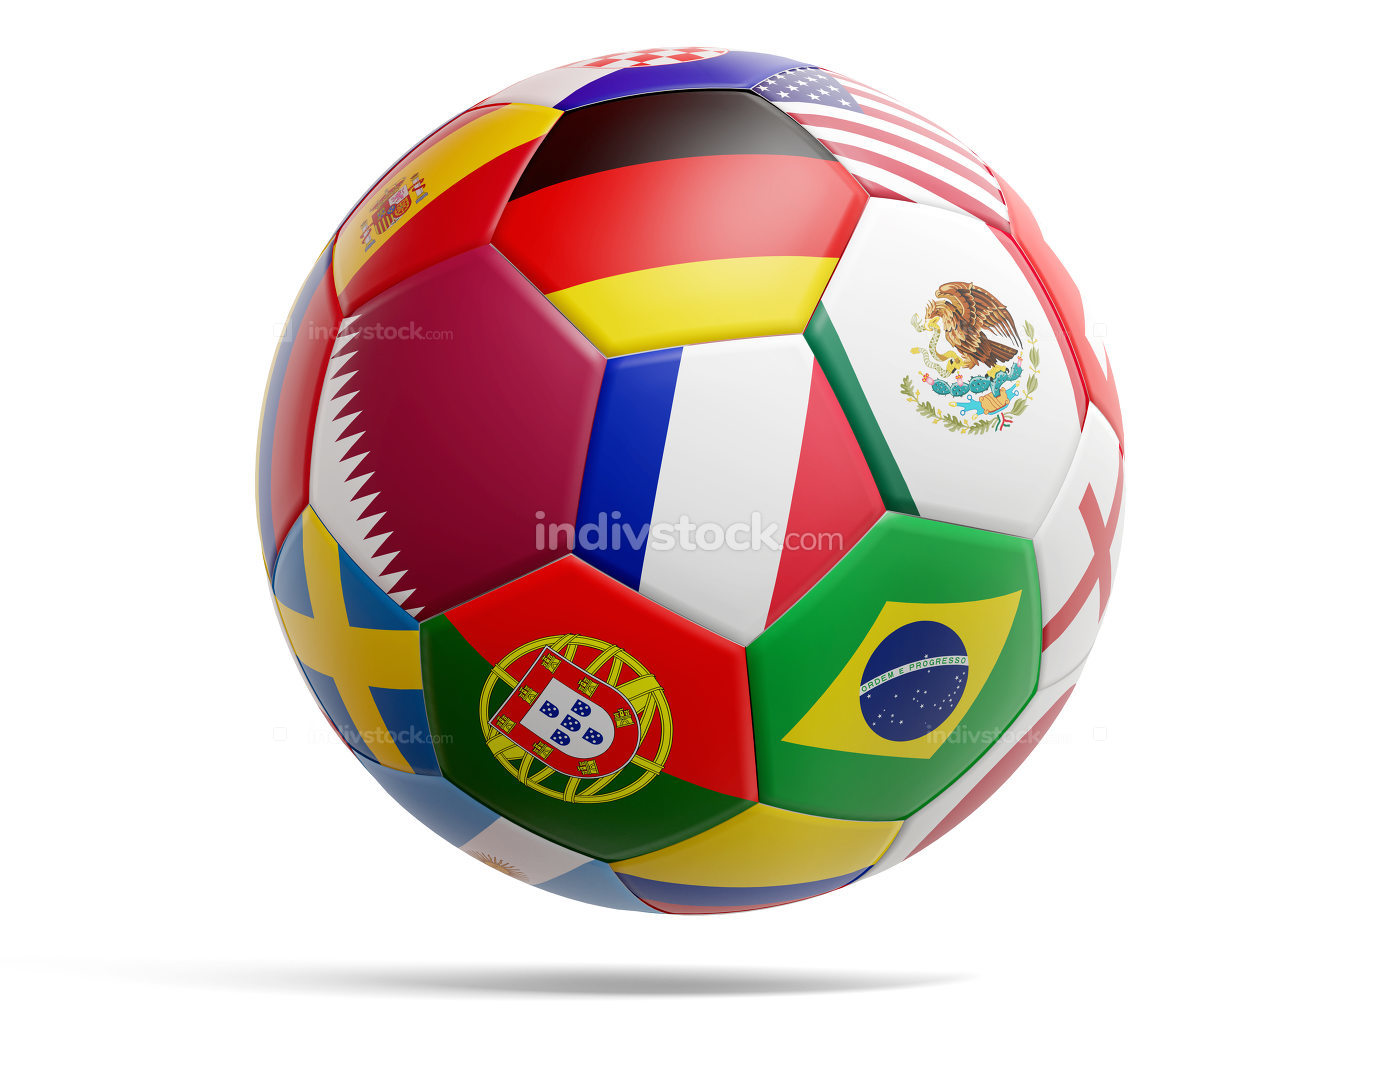 Qatar design soccer football ball with flags of Qatar and variou